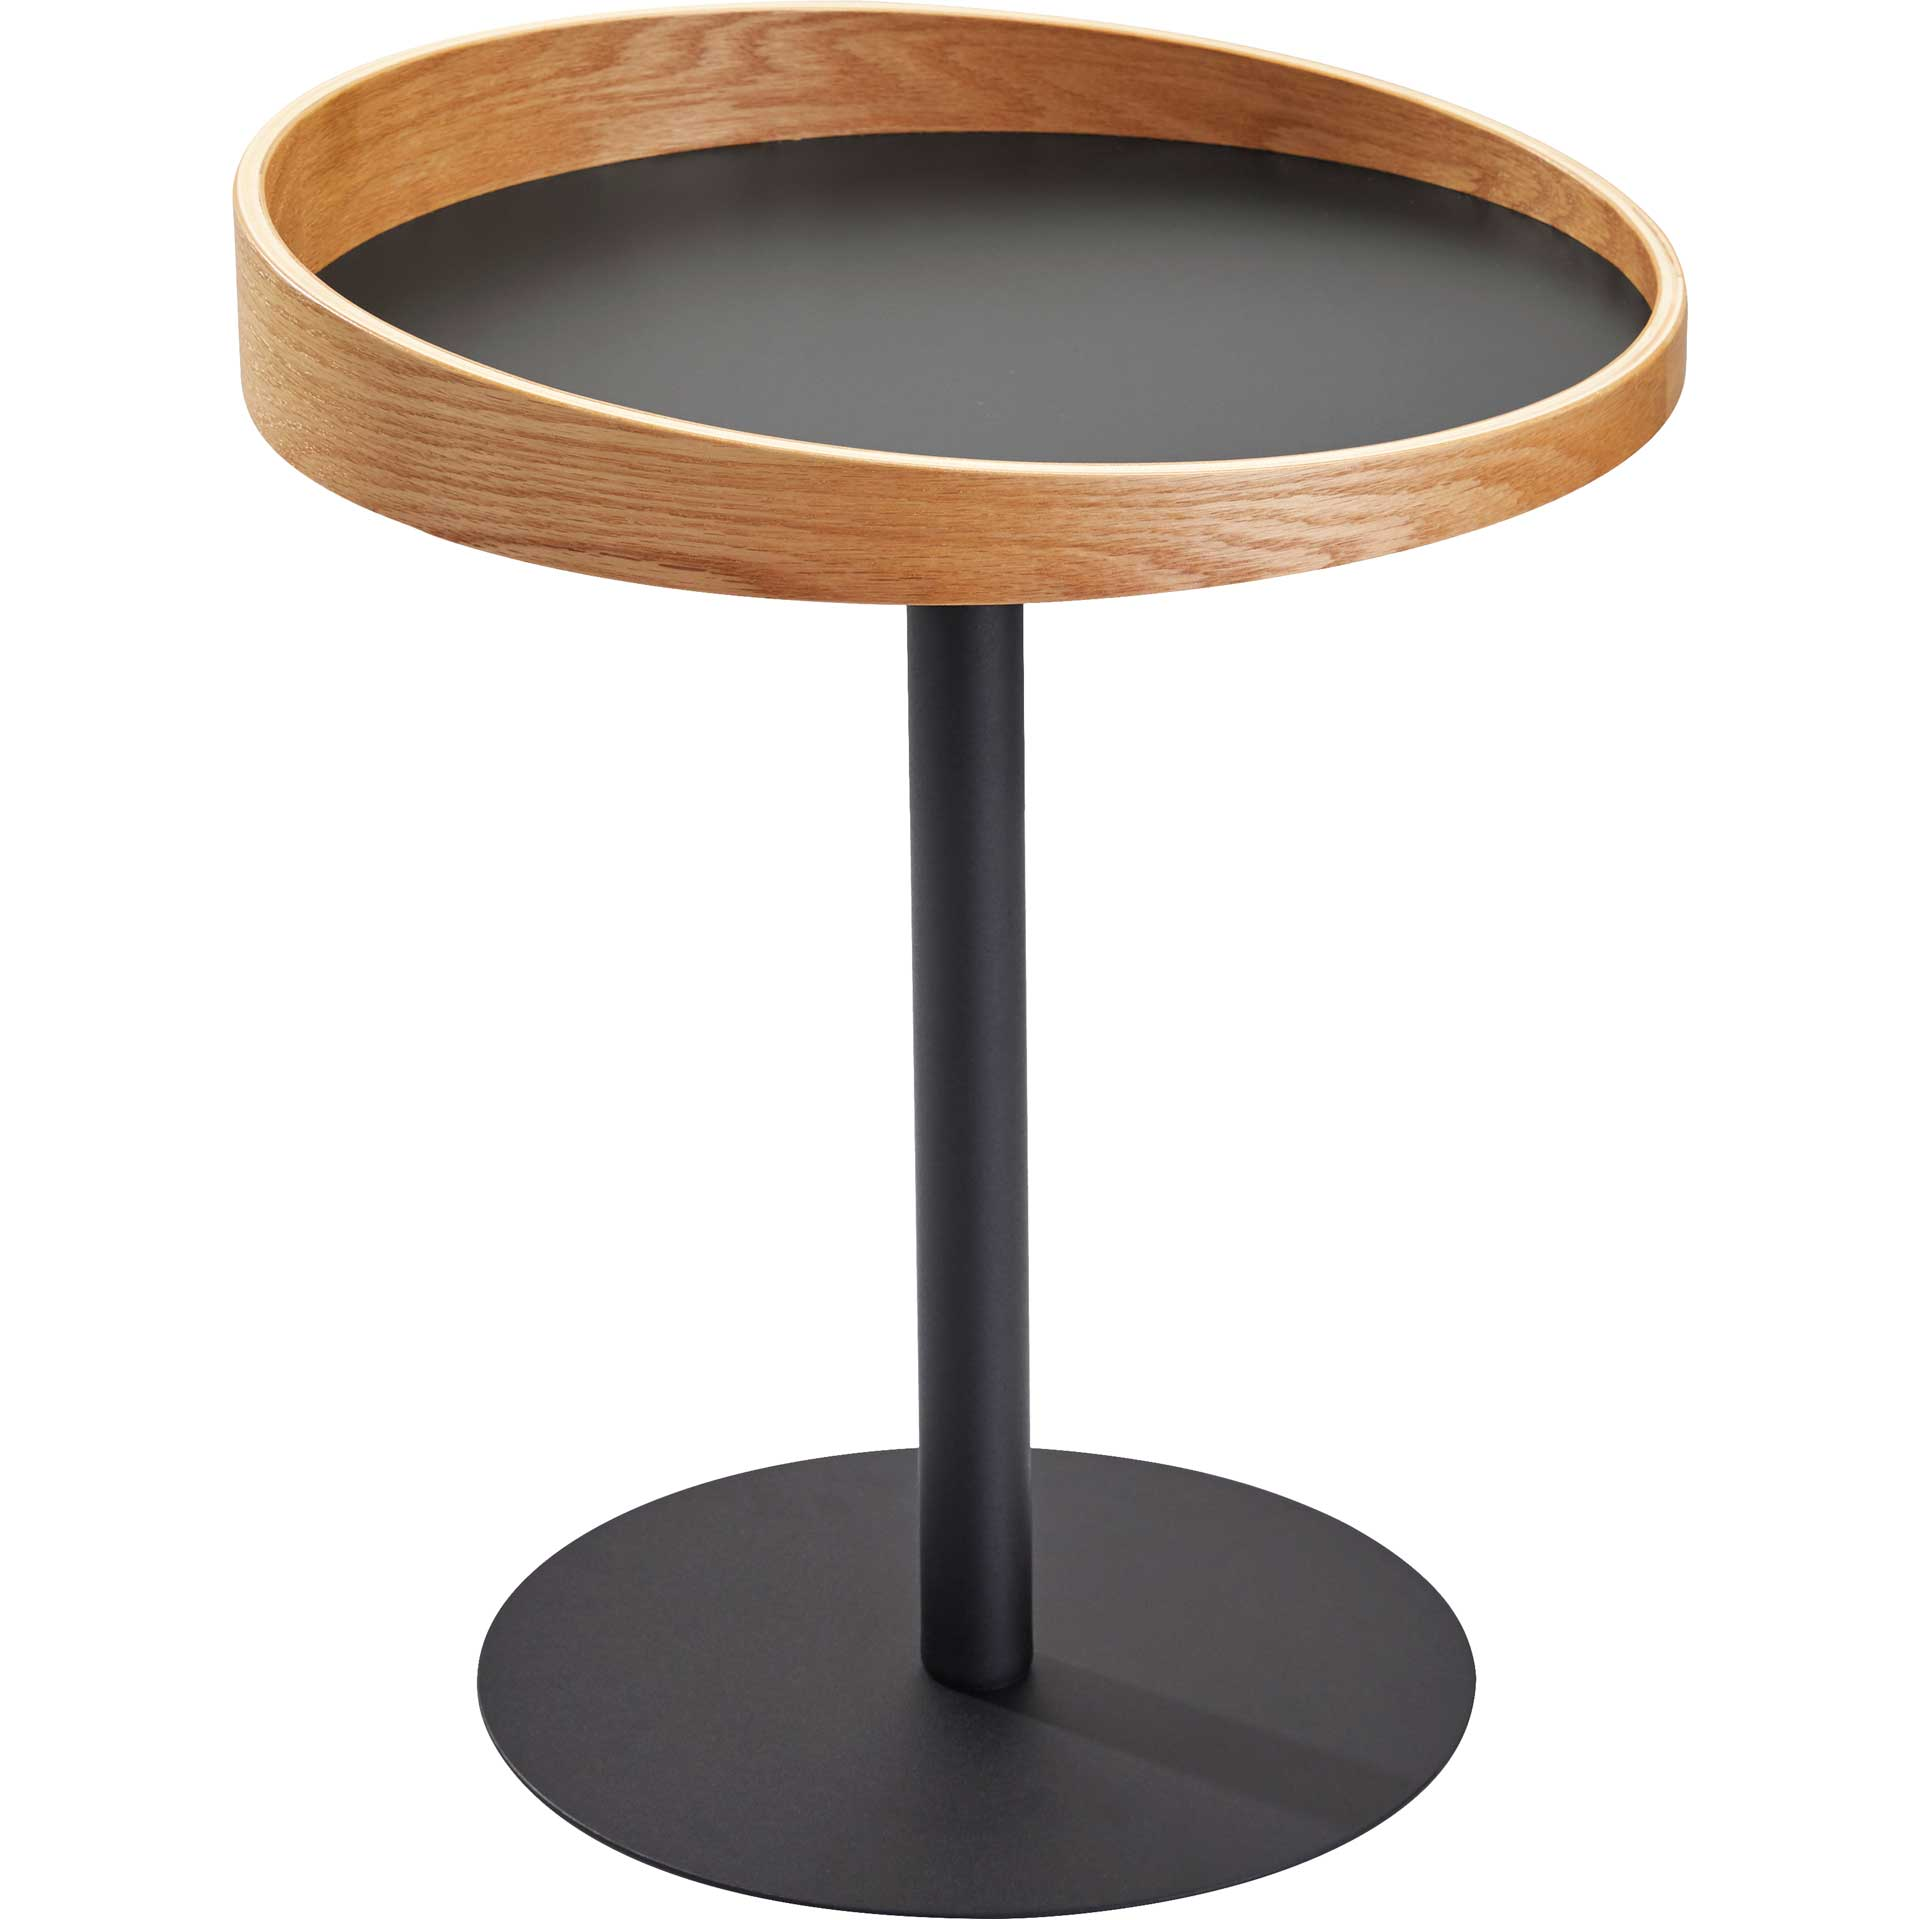 Croix End Table Black/Natural